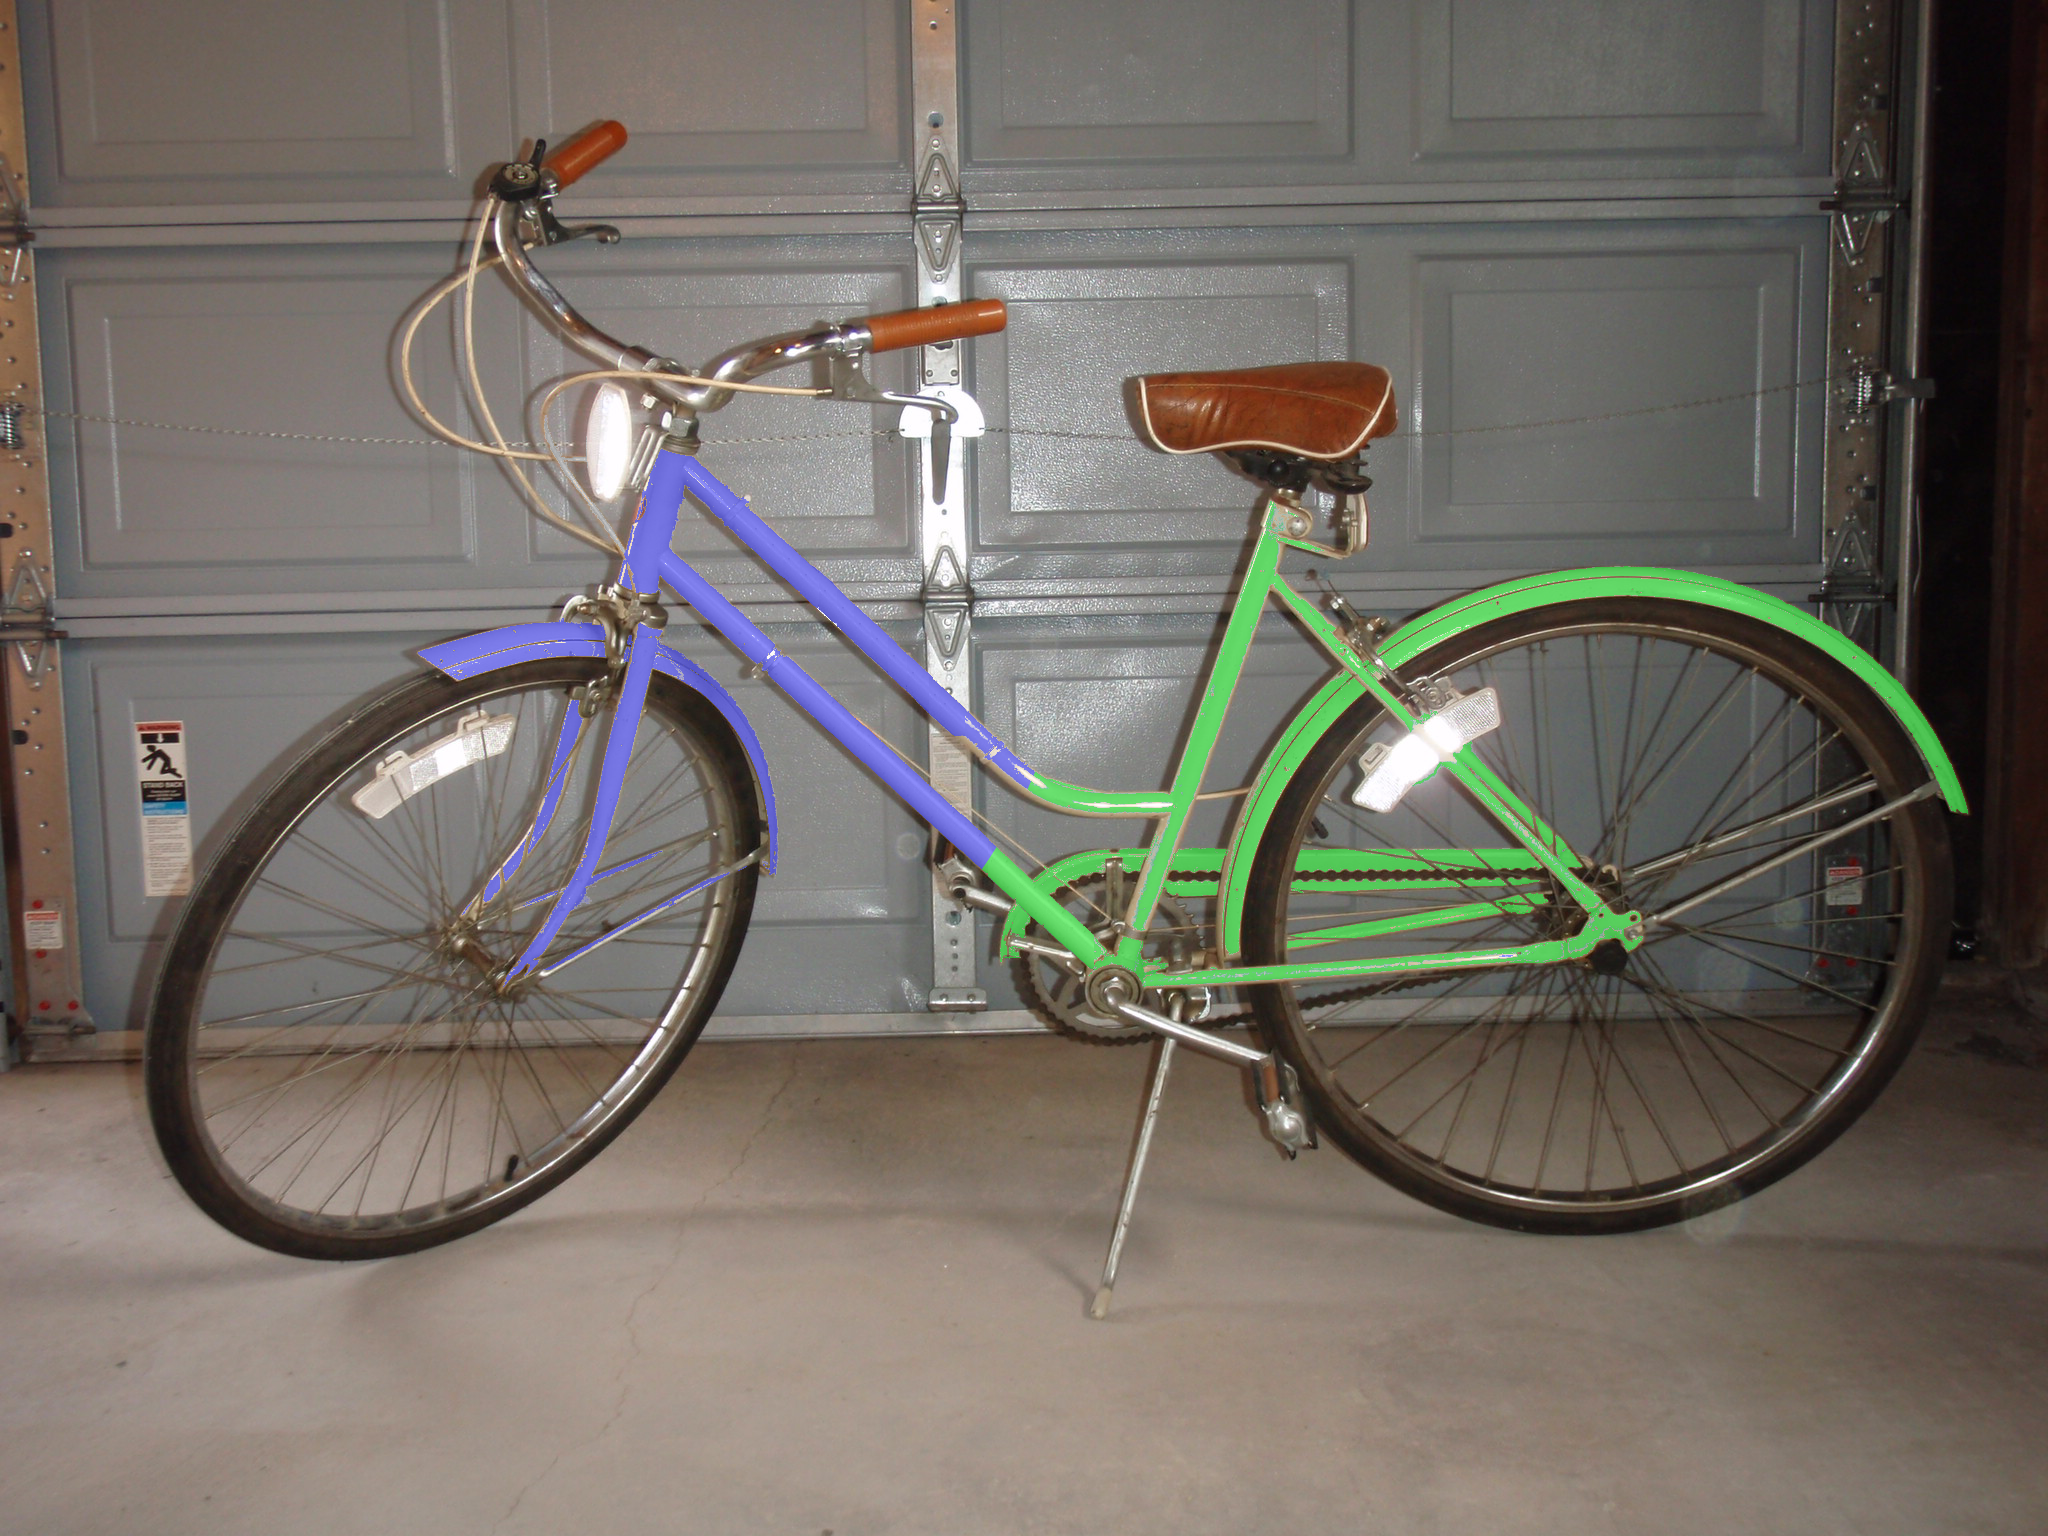 The proposed bicycle painted in GIMP